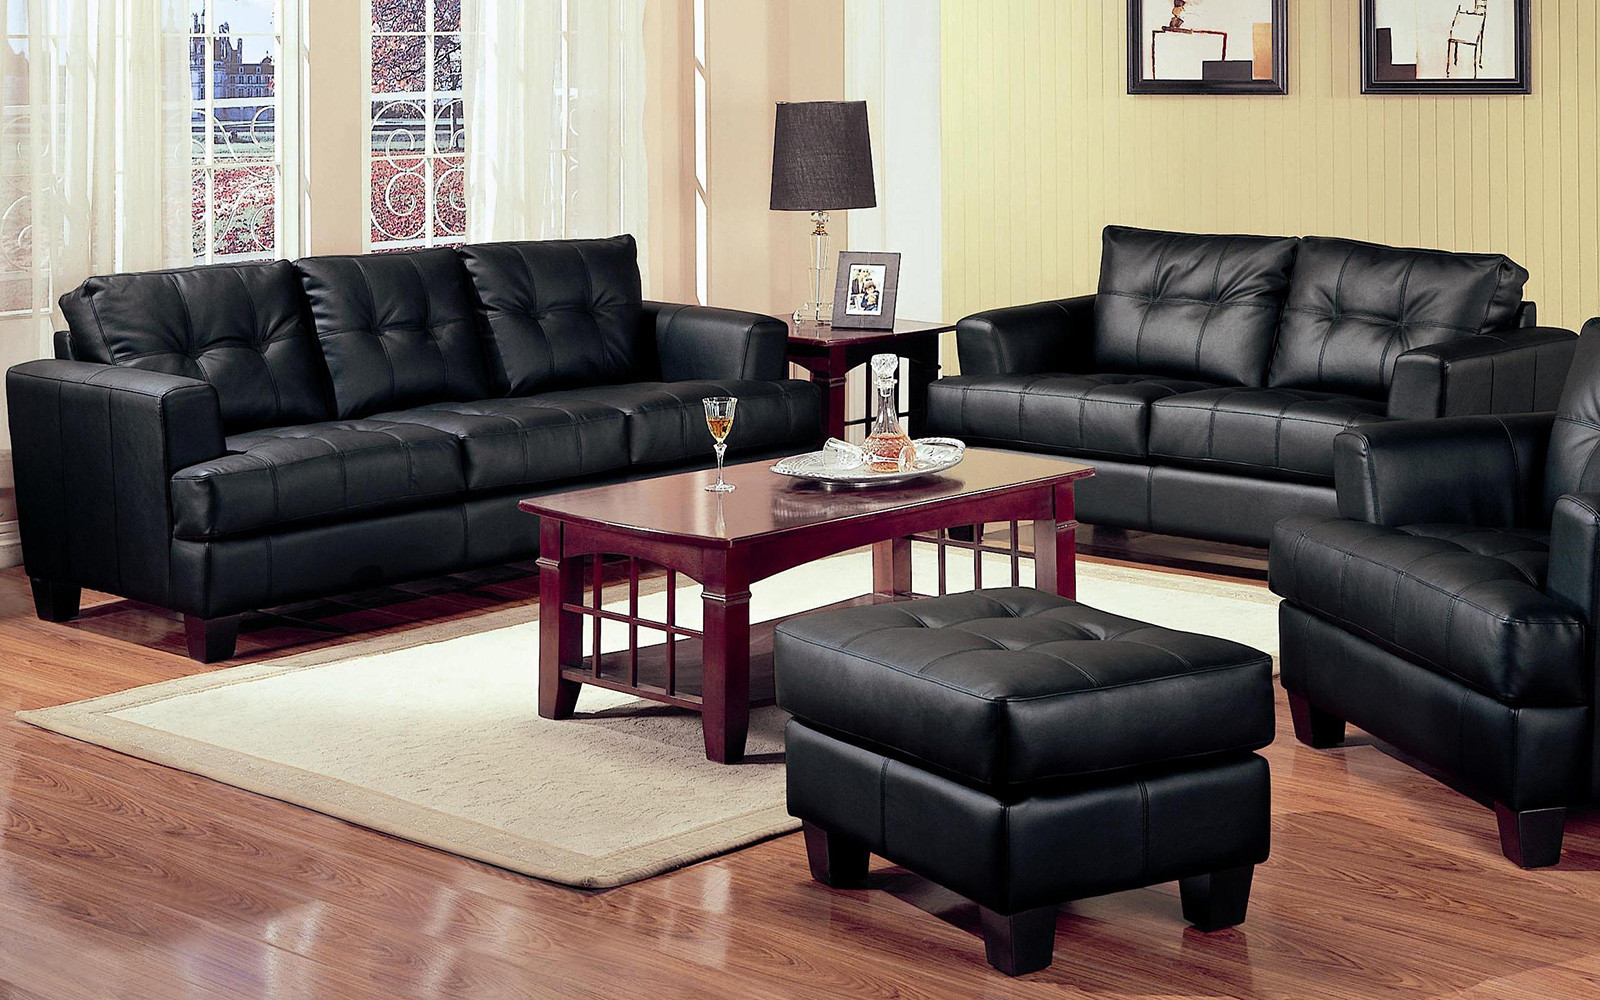 Leather Living Room Furnitures 2 Piece Modern Black Bonded Leather Sofa And Loveseat Livingroom Set